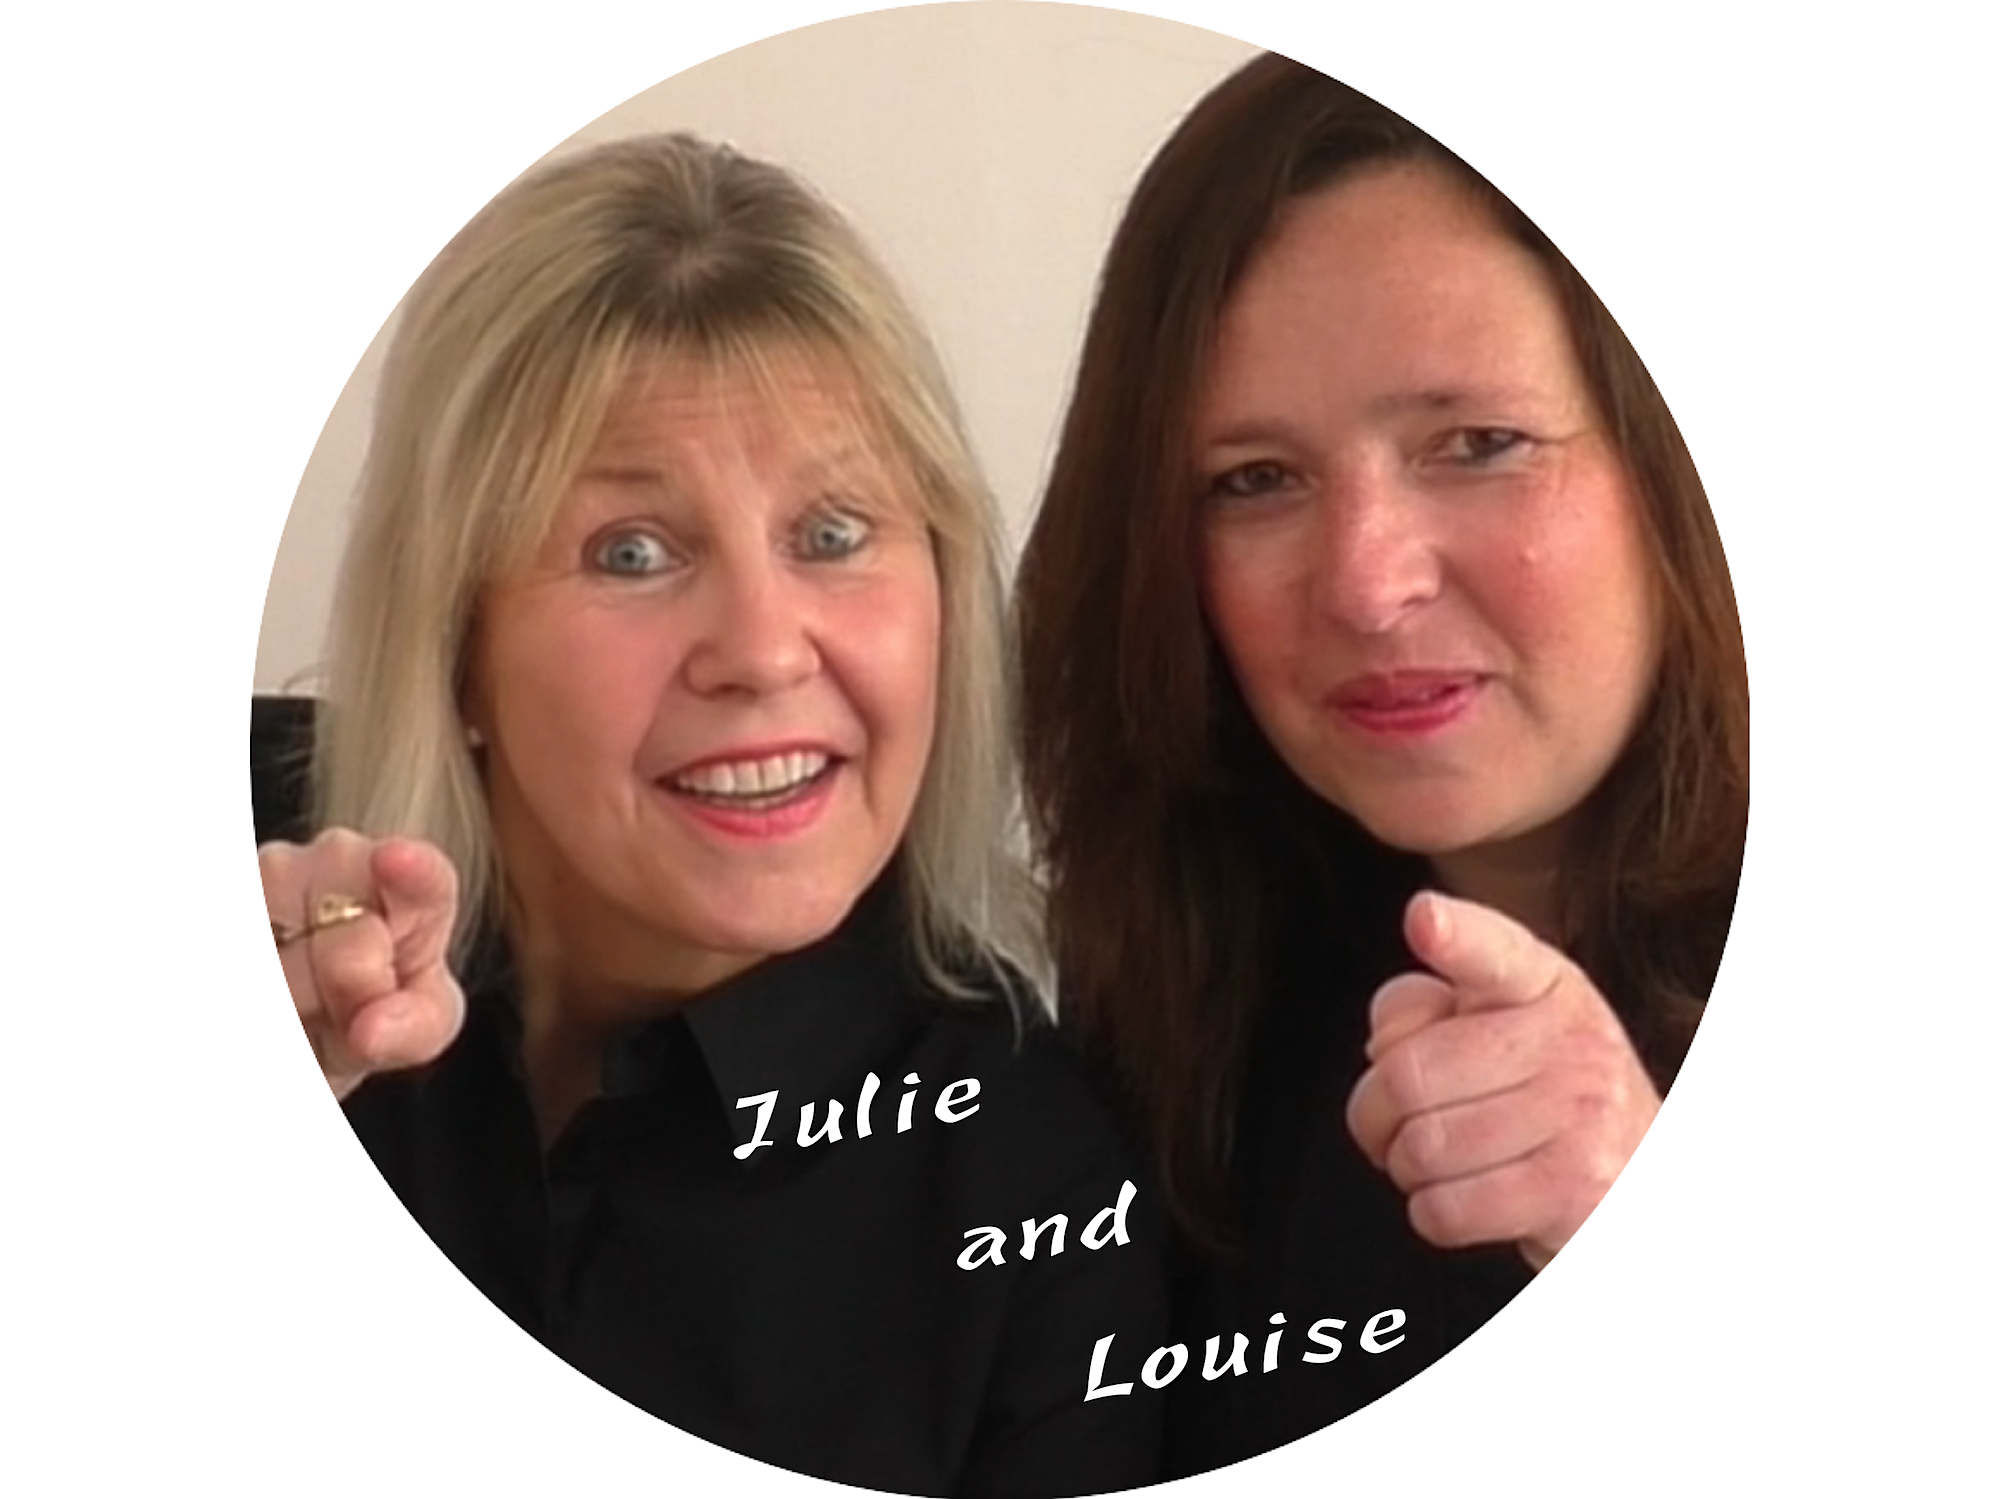 Julie and Louise